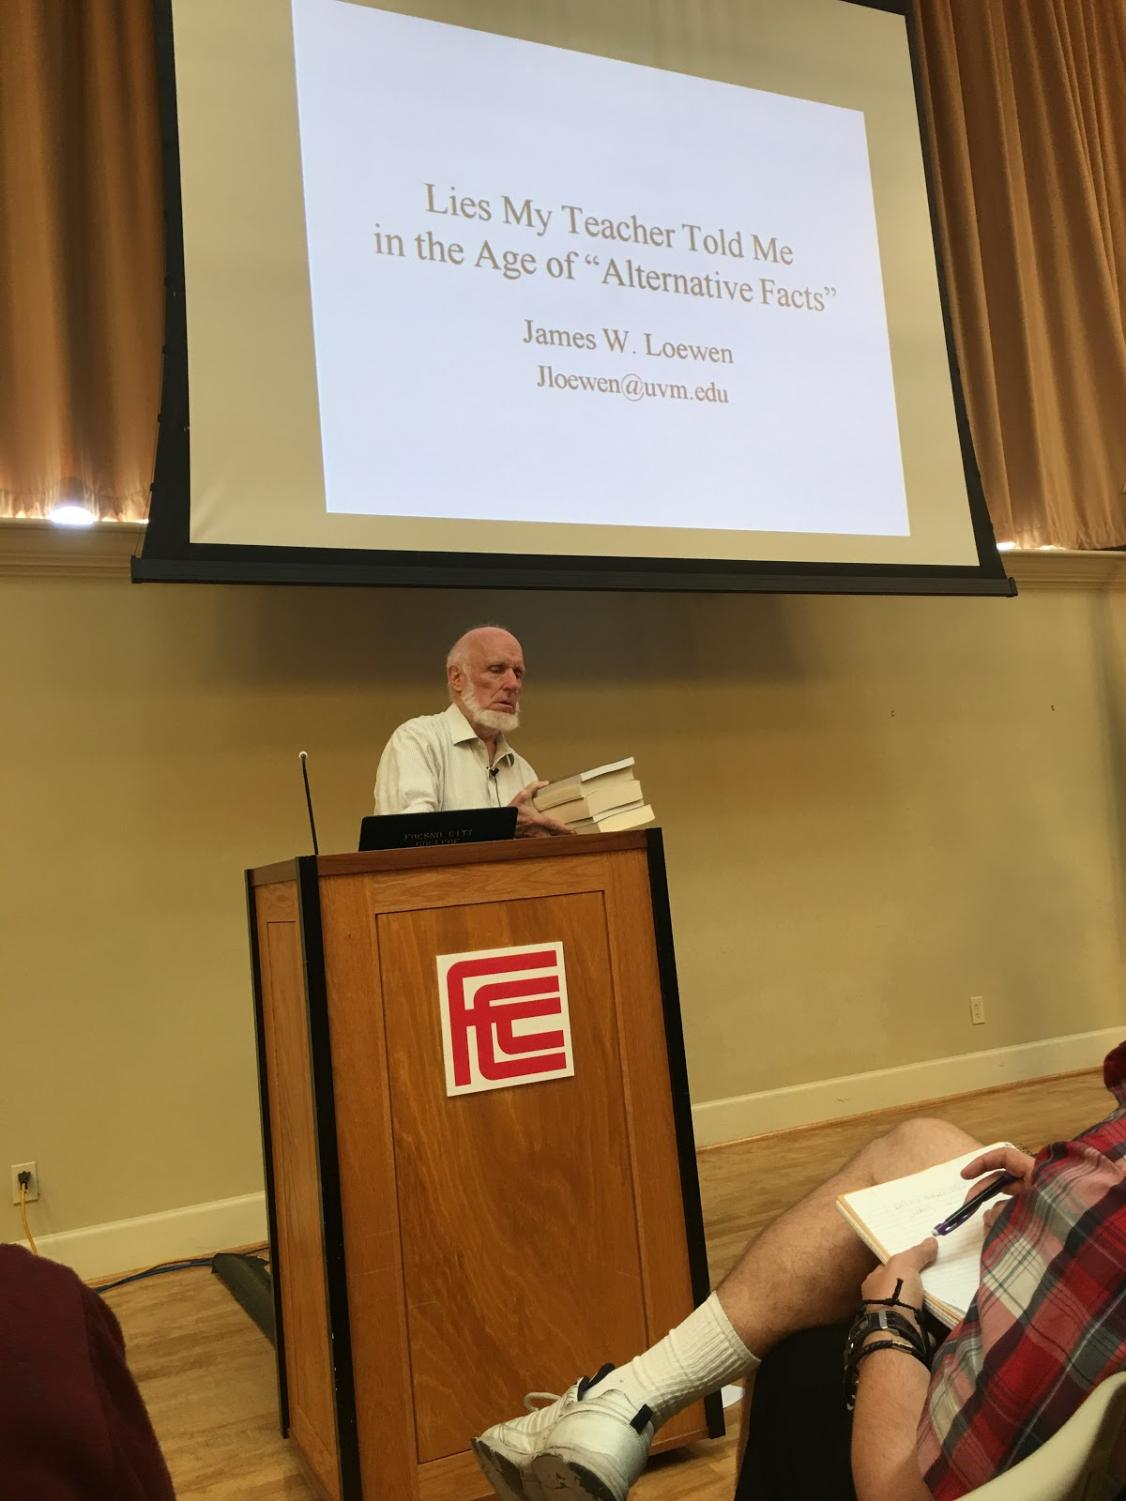 James Loewen preparing to give a lecture at Fresno City College on Thursday, October 4  2018.